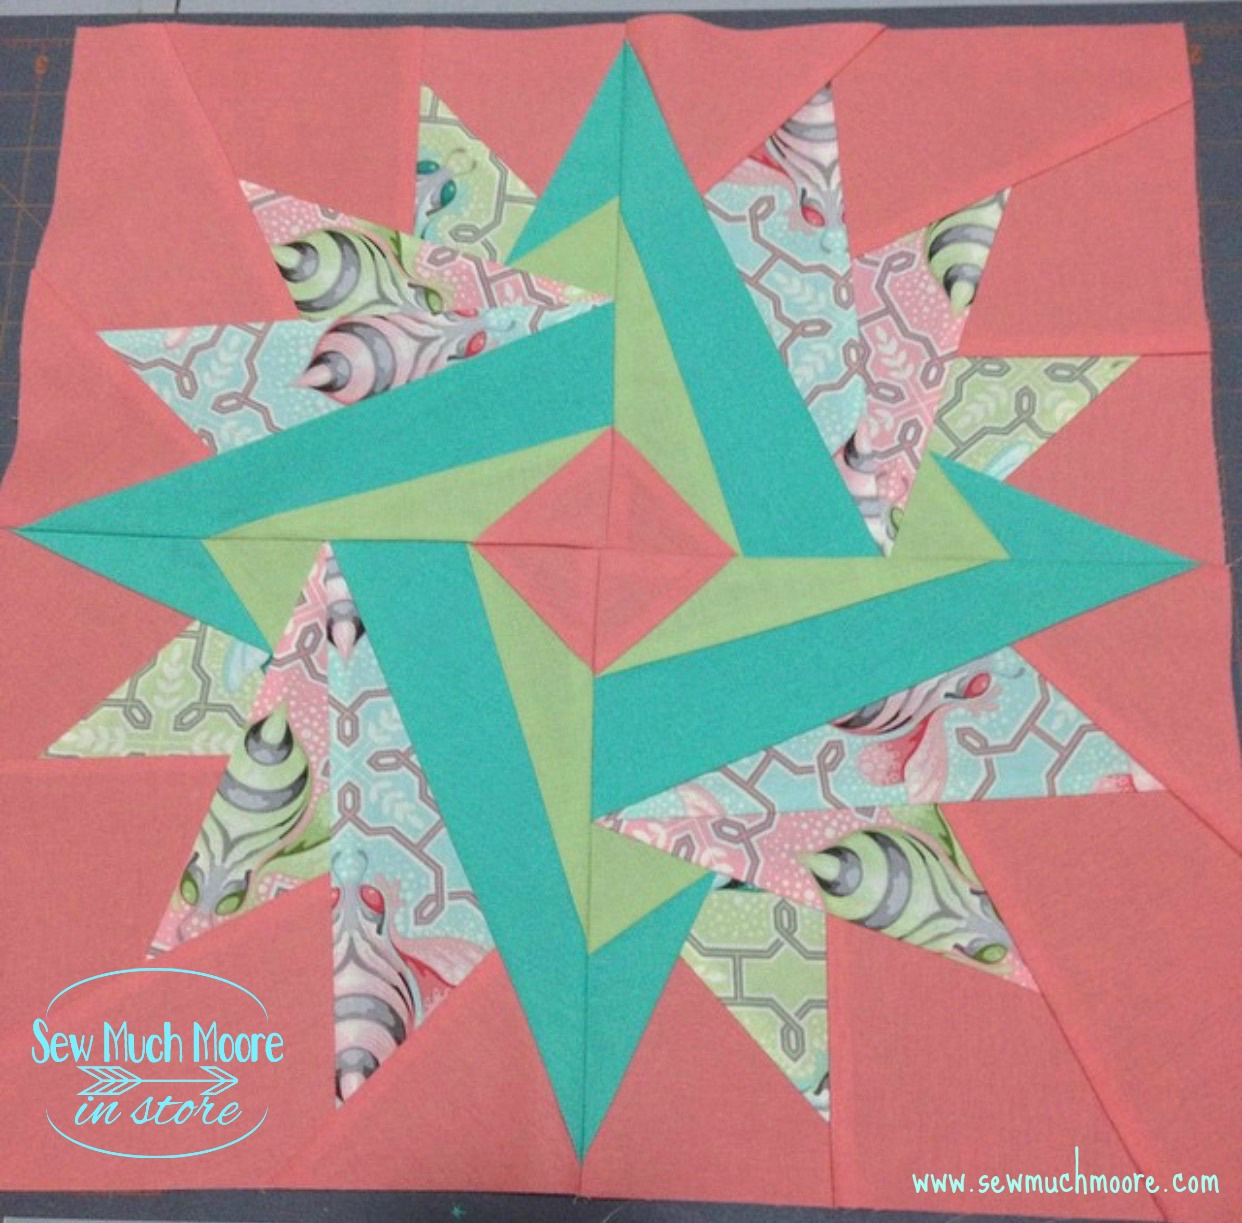 Make this lovely Springtime Mini Quilt! Get the pattern and materials list and get started! #Tutorial #Free #Pattern #Printables #Quilts #Pillows #Easy #Templates #Star #ForBeginners #Beginner #Art #Desgin #ArtDesign #Block #Hip #Trendy #SewMuchMoore #SewMuchMooreInStore